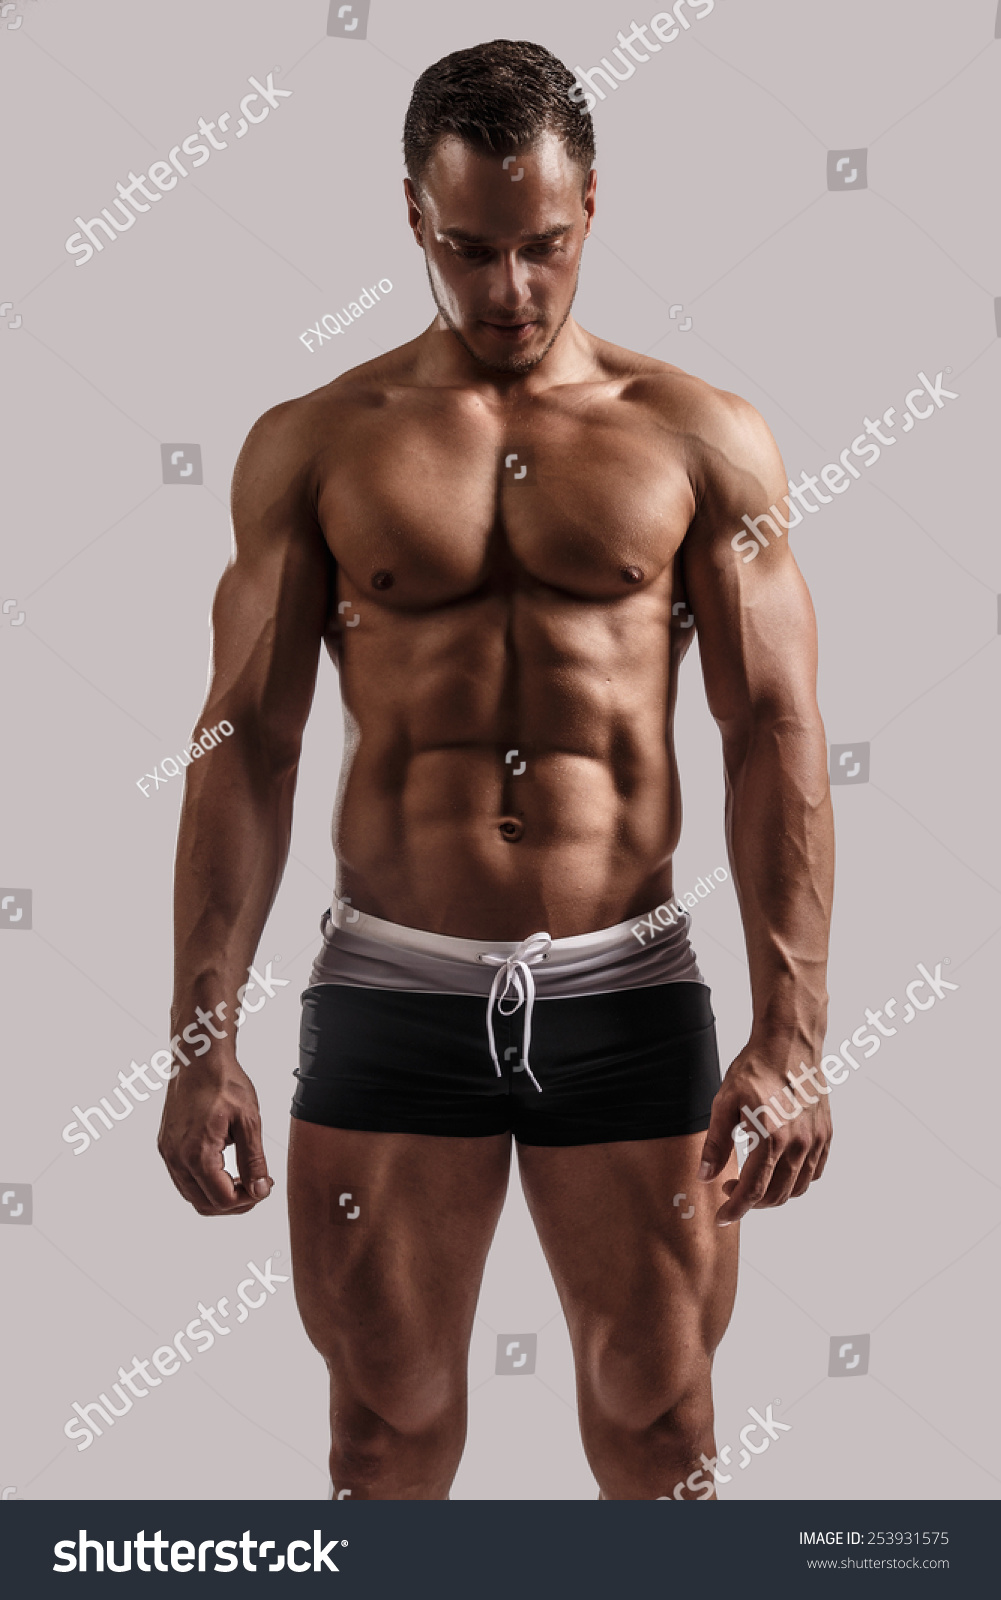 Young Guy Great Body Anatomy Black Stock Photo (Royalty Free ...